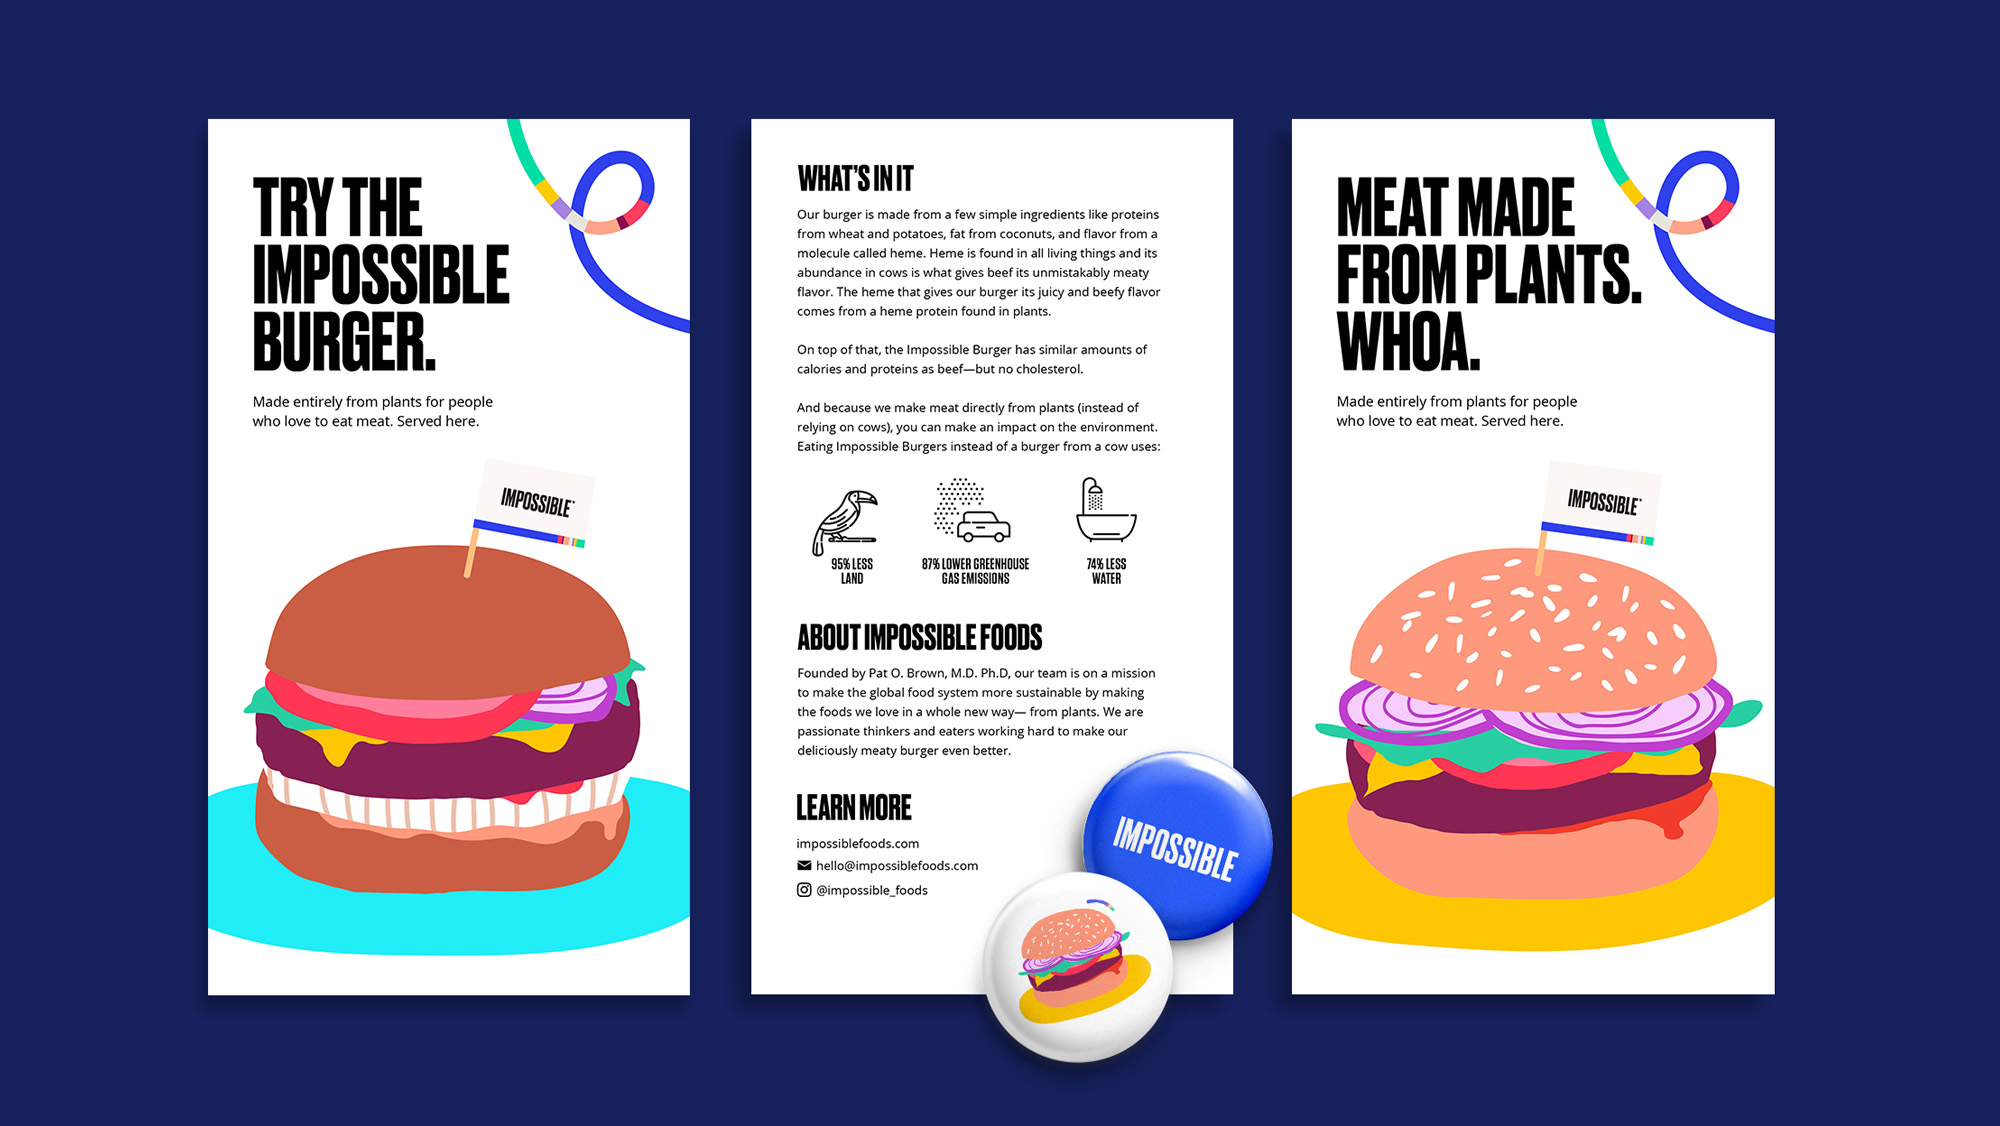 Impossible Foods: Collateral & Packaging